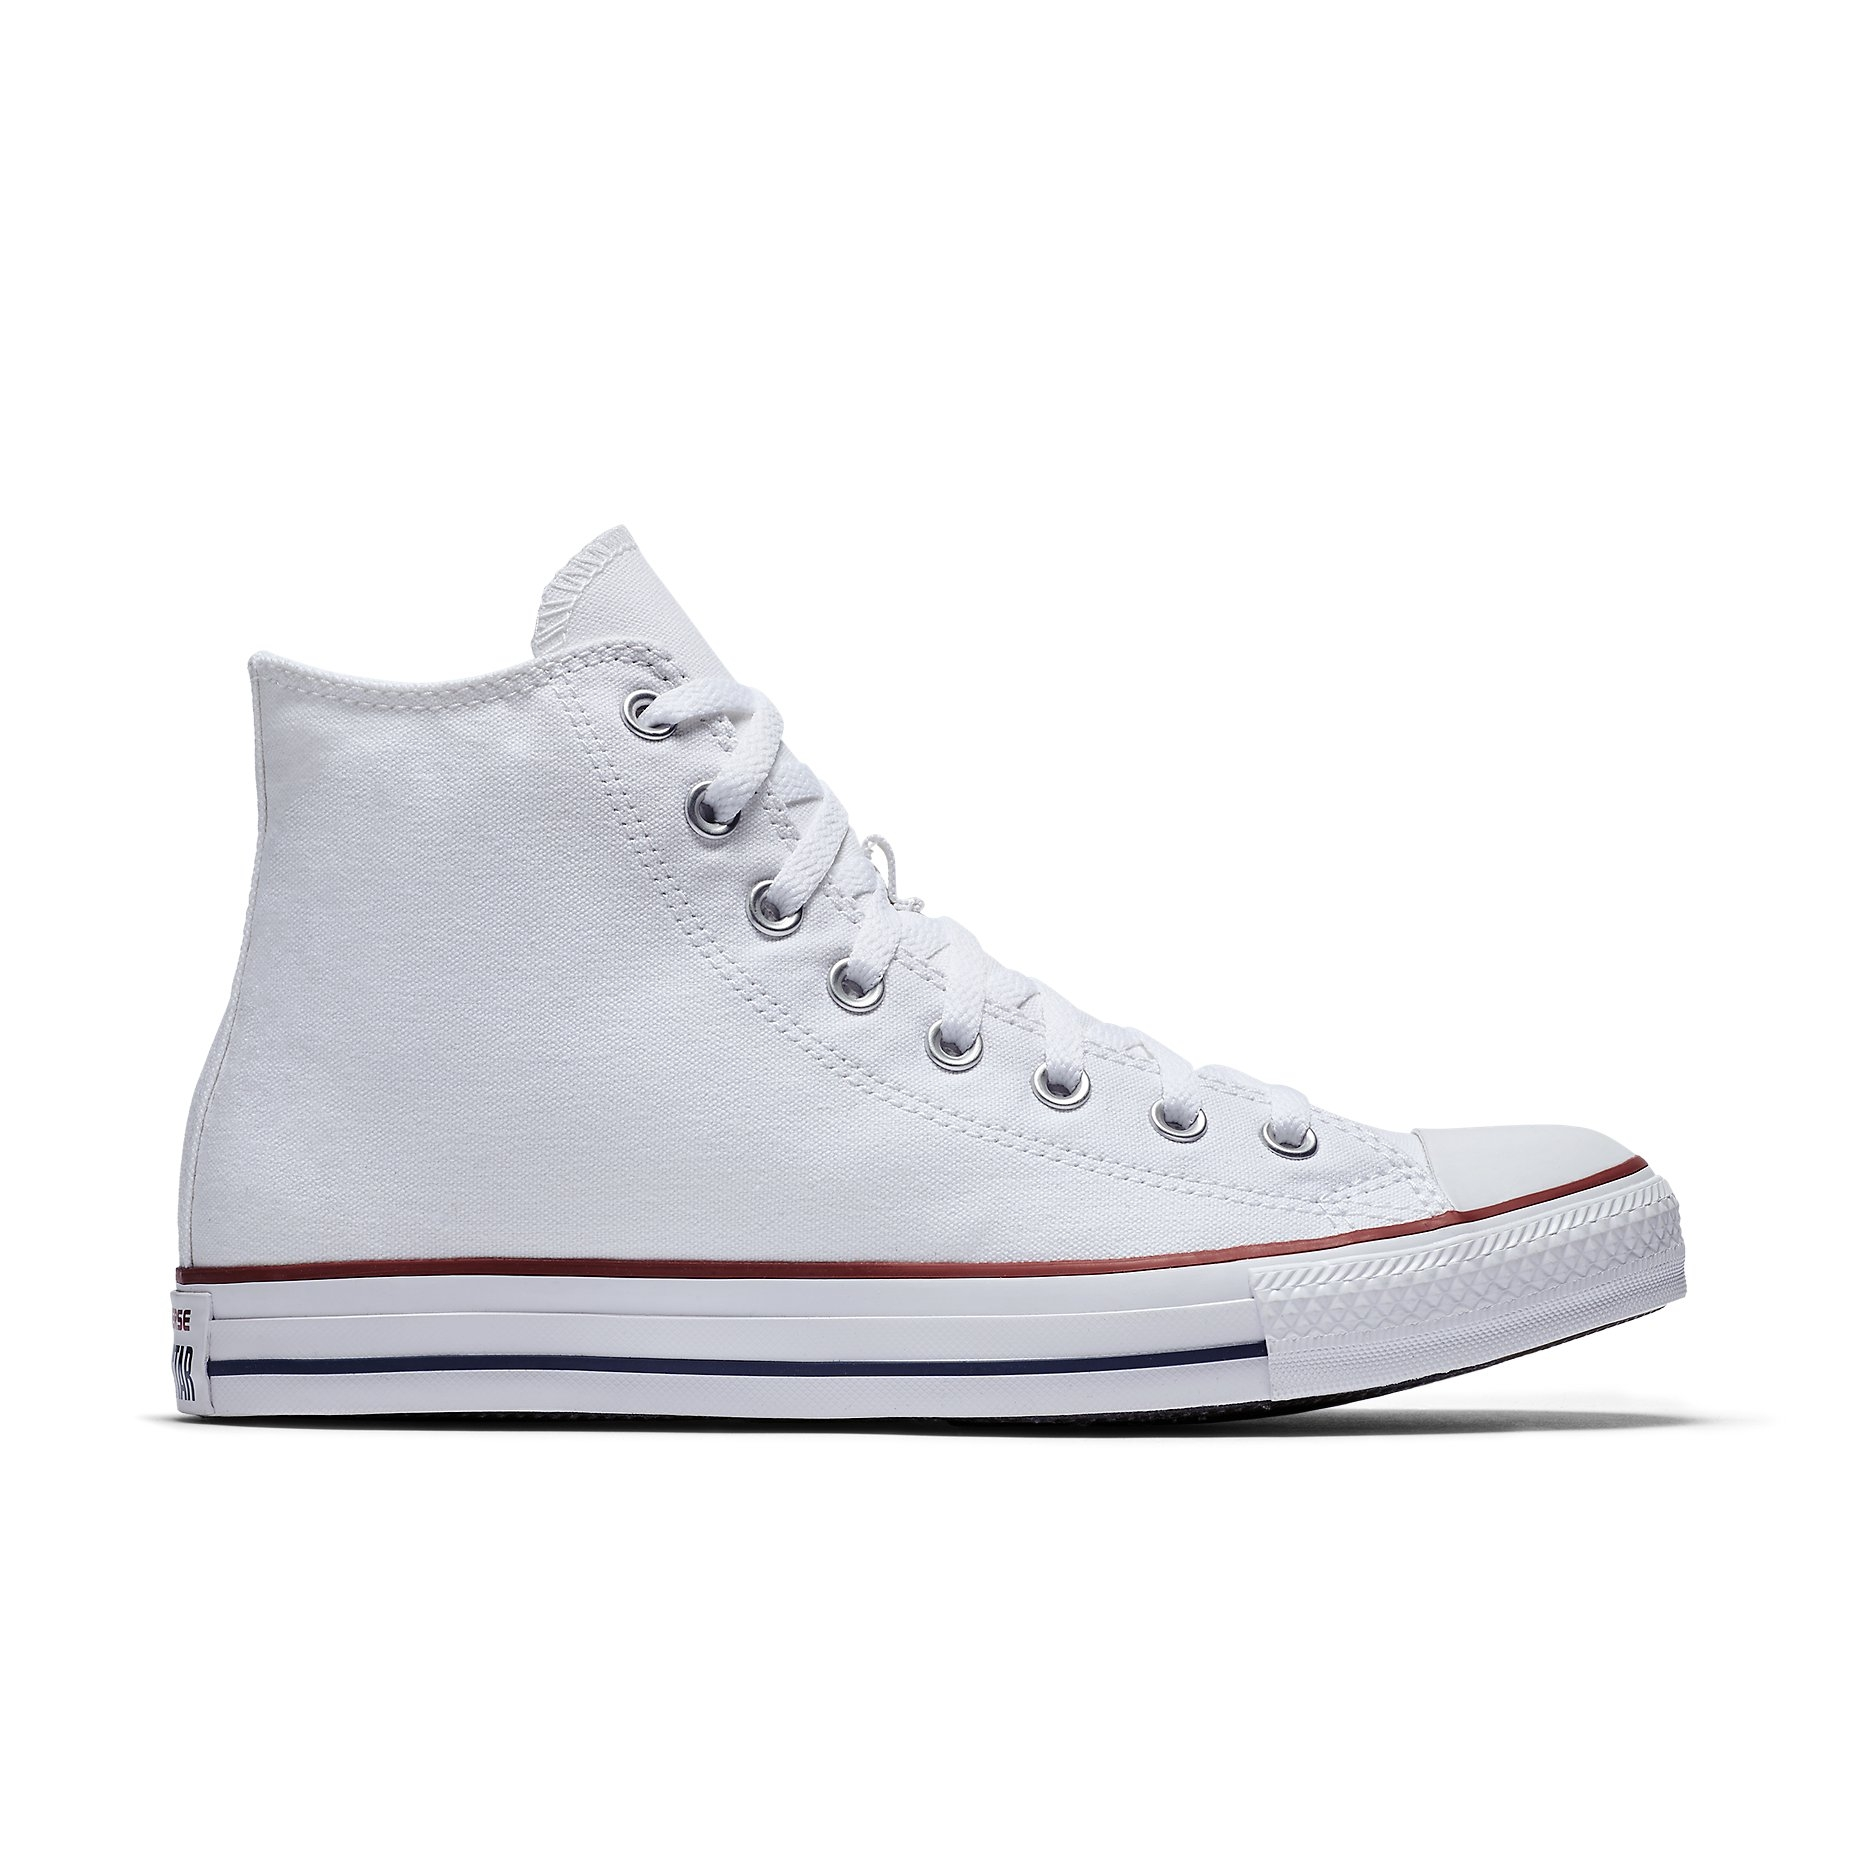 New Converse Chuck Taylor All Star High Top Sneakers ...